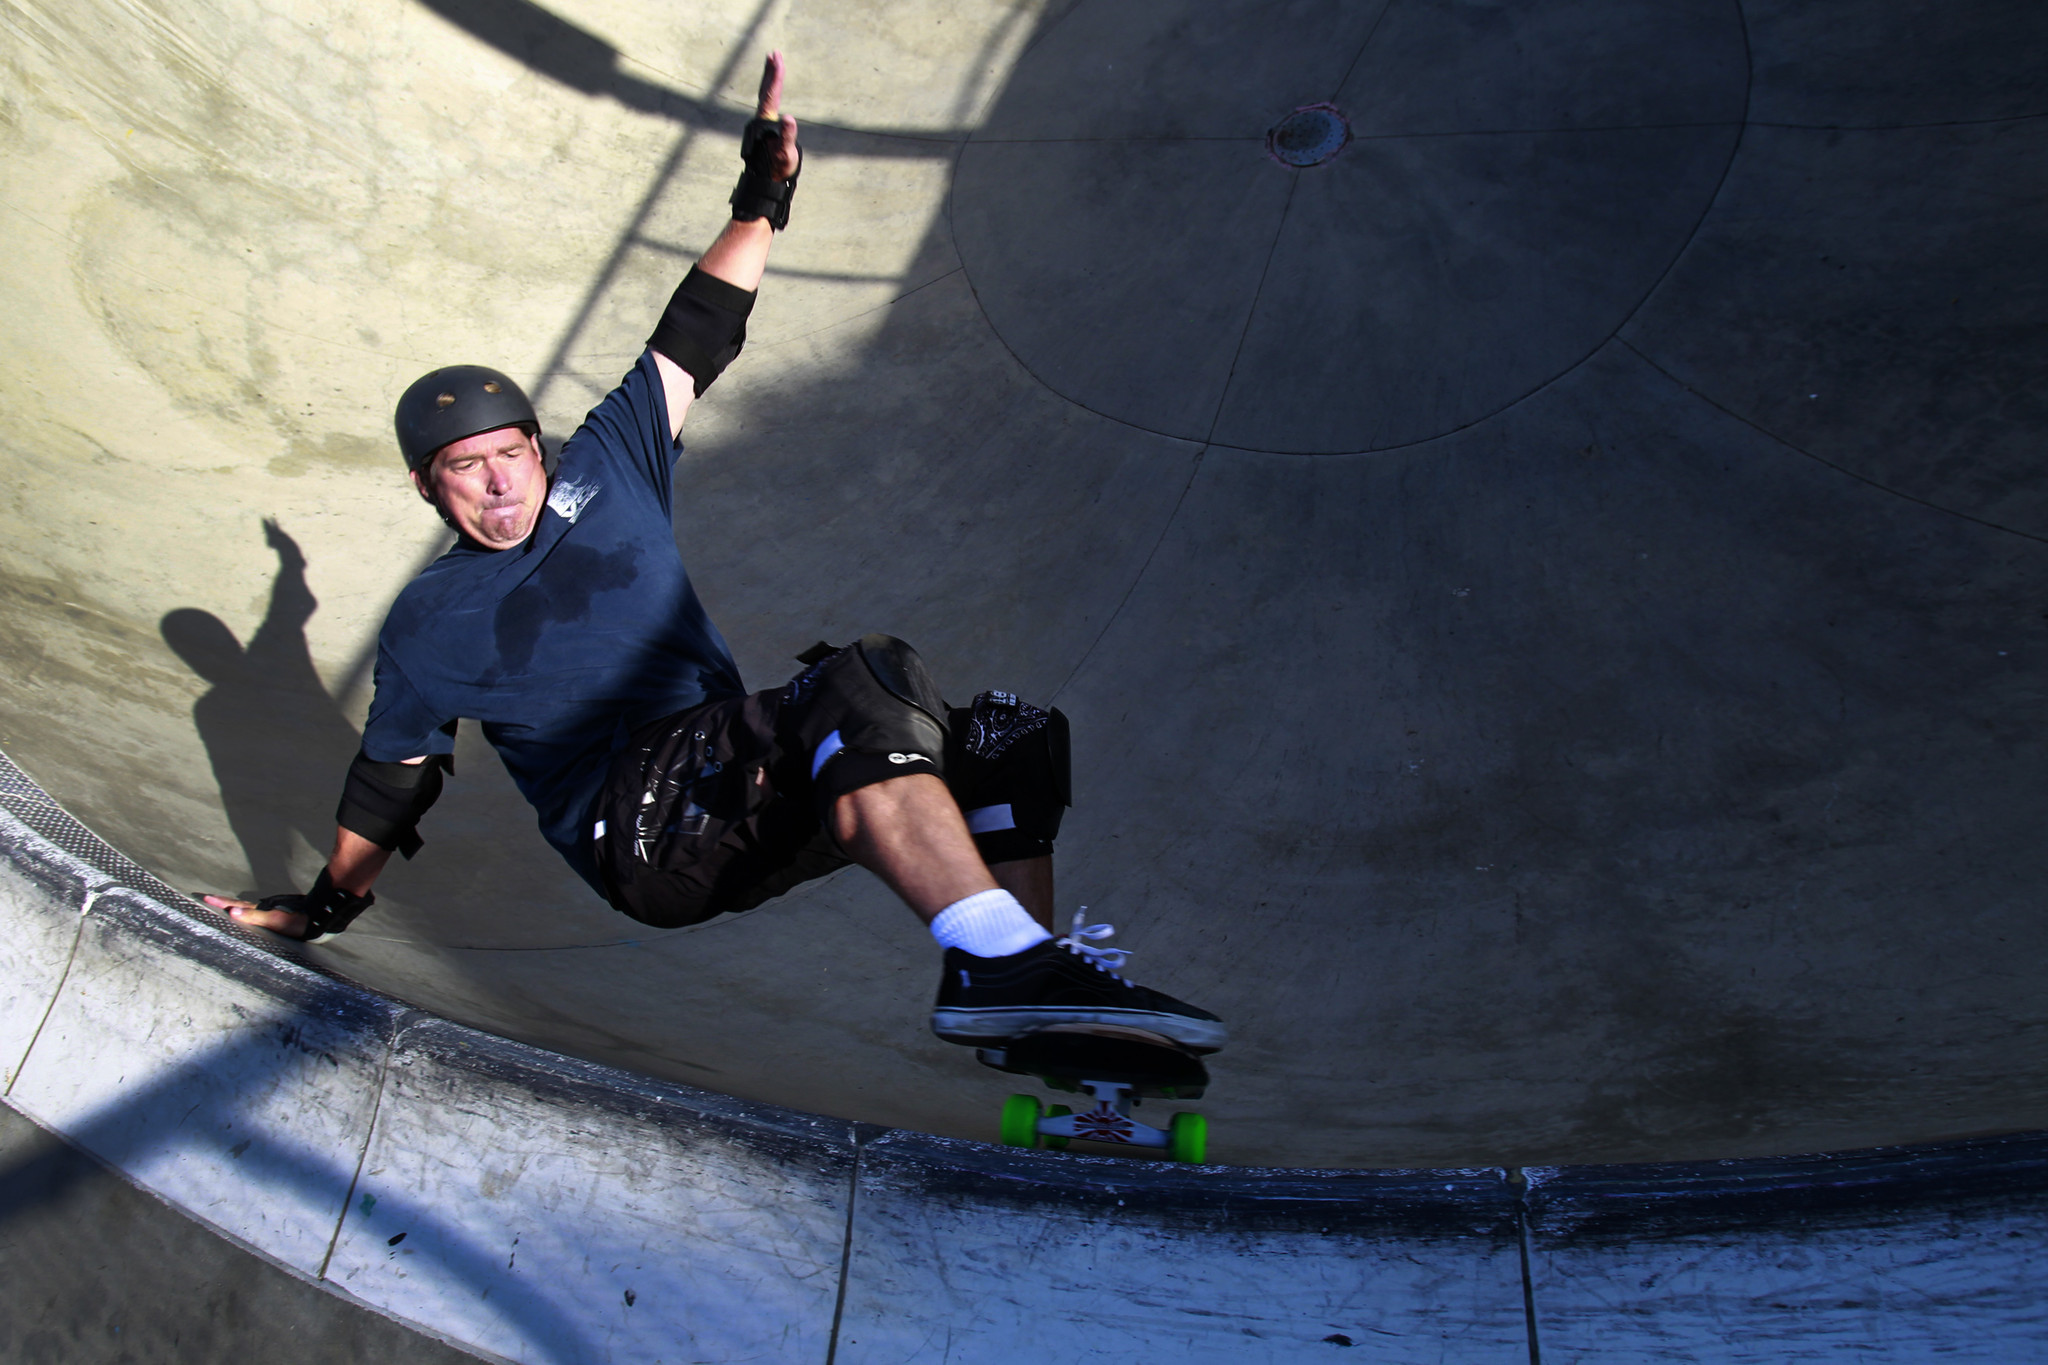 Middle-aged skateboarders defy family skeptics, and falls